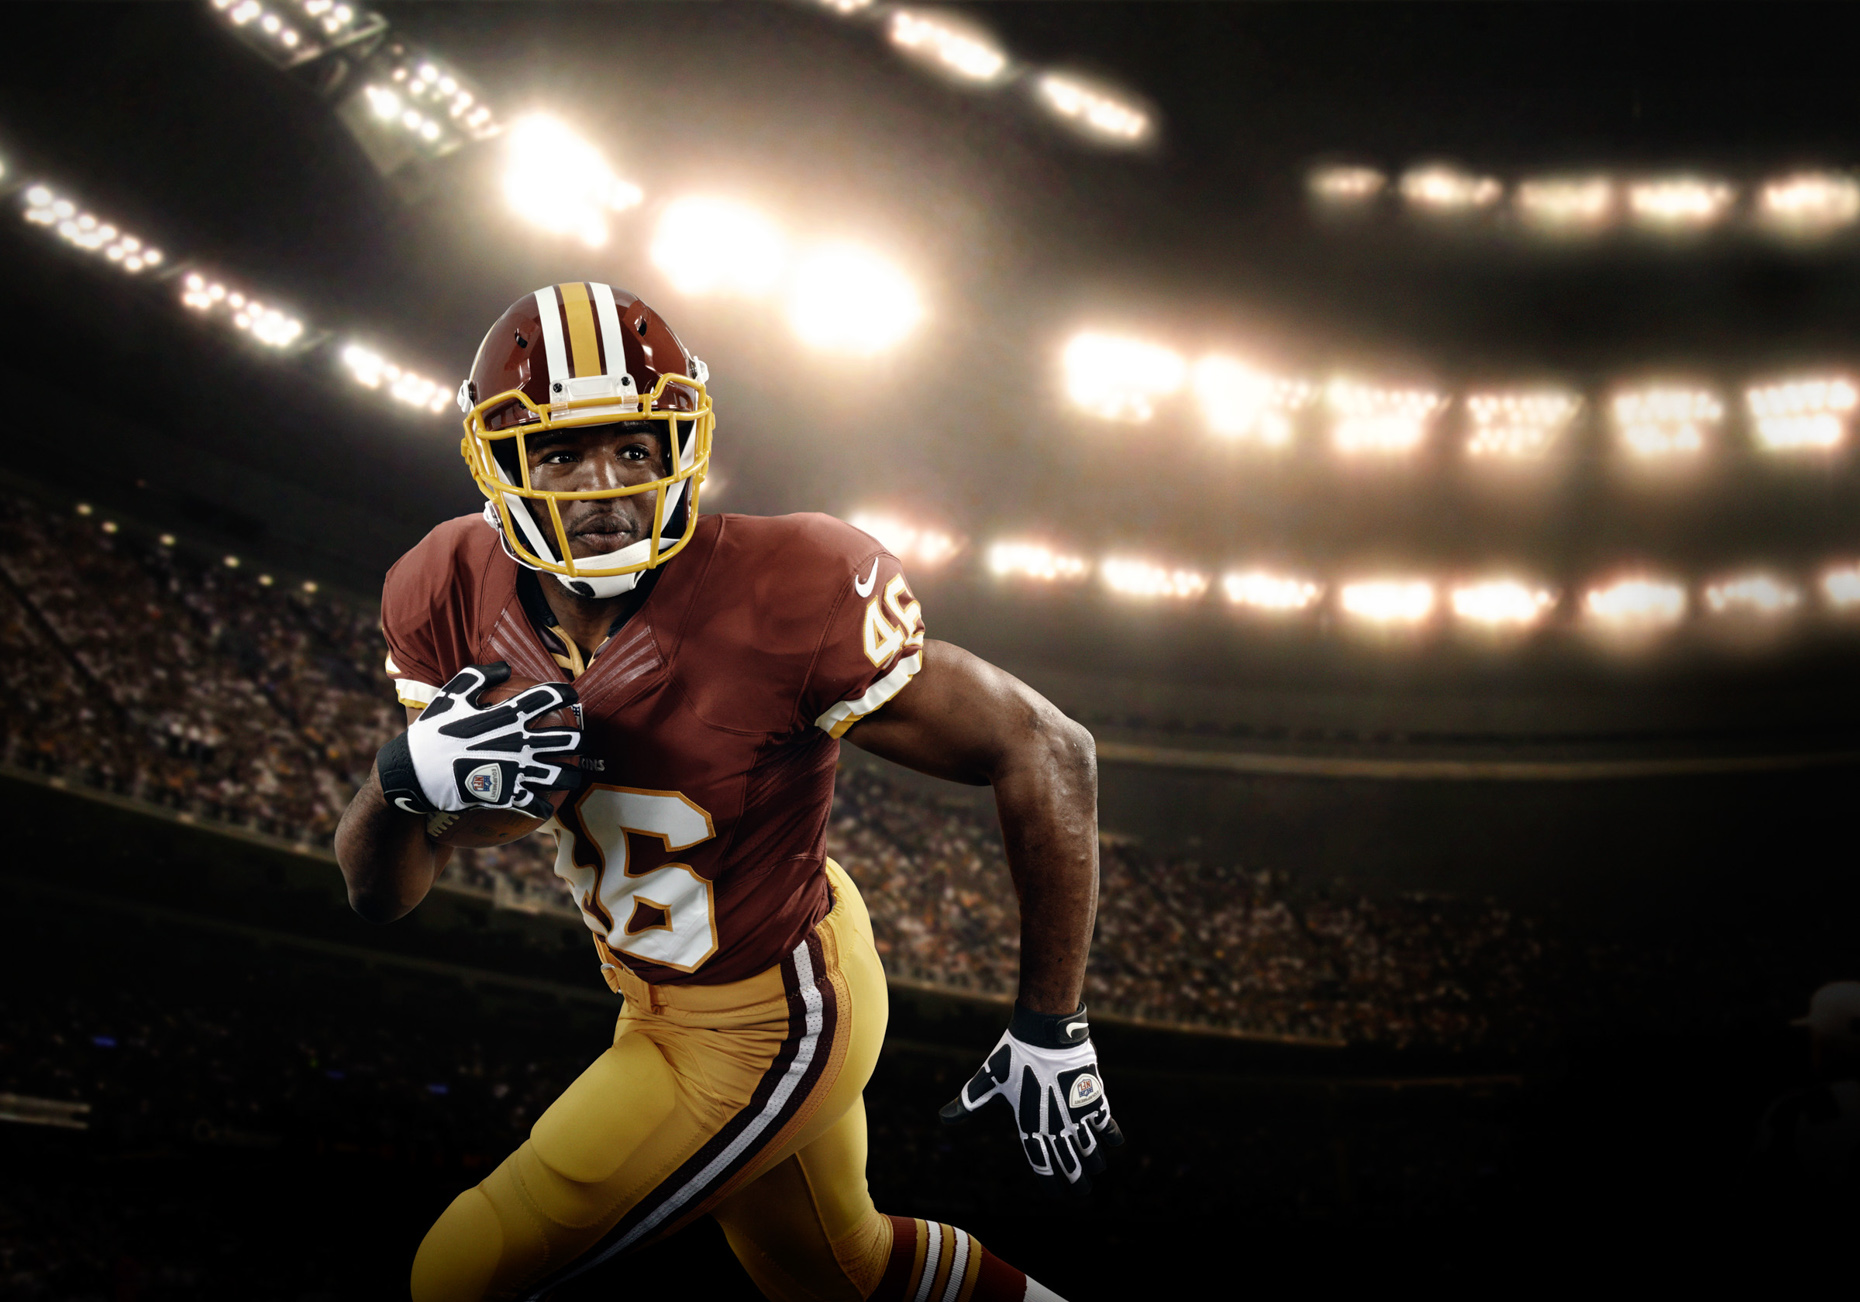 Washington Redskin Alfred Morris  for Verizon NFL rushing past the camera in a packed stadium